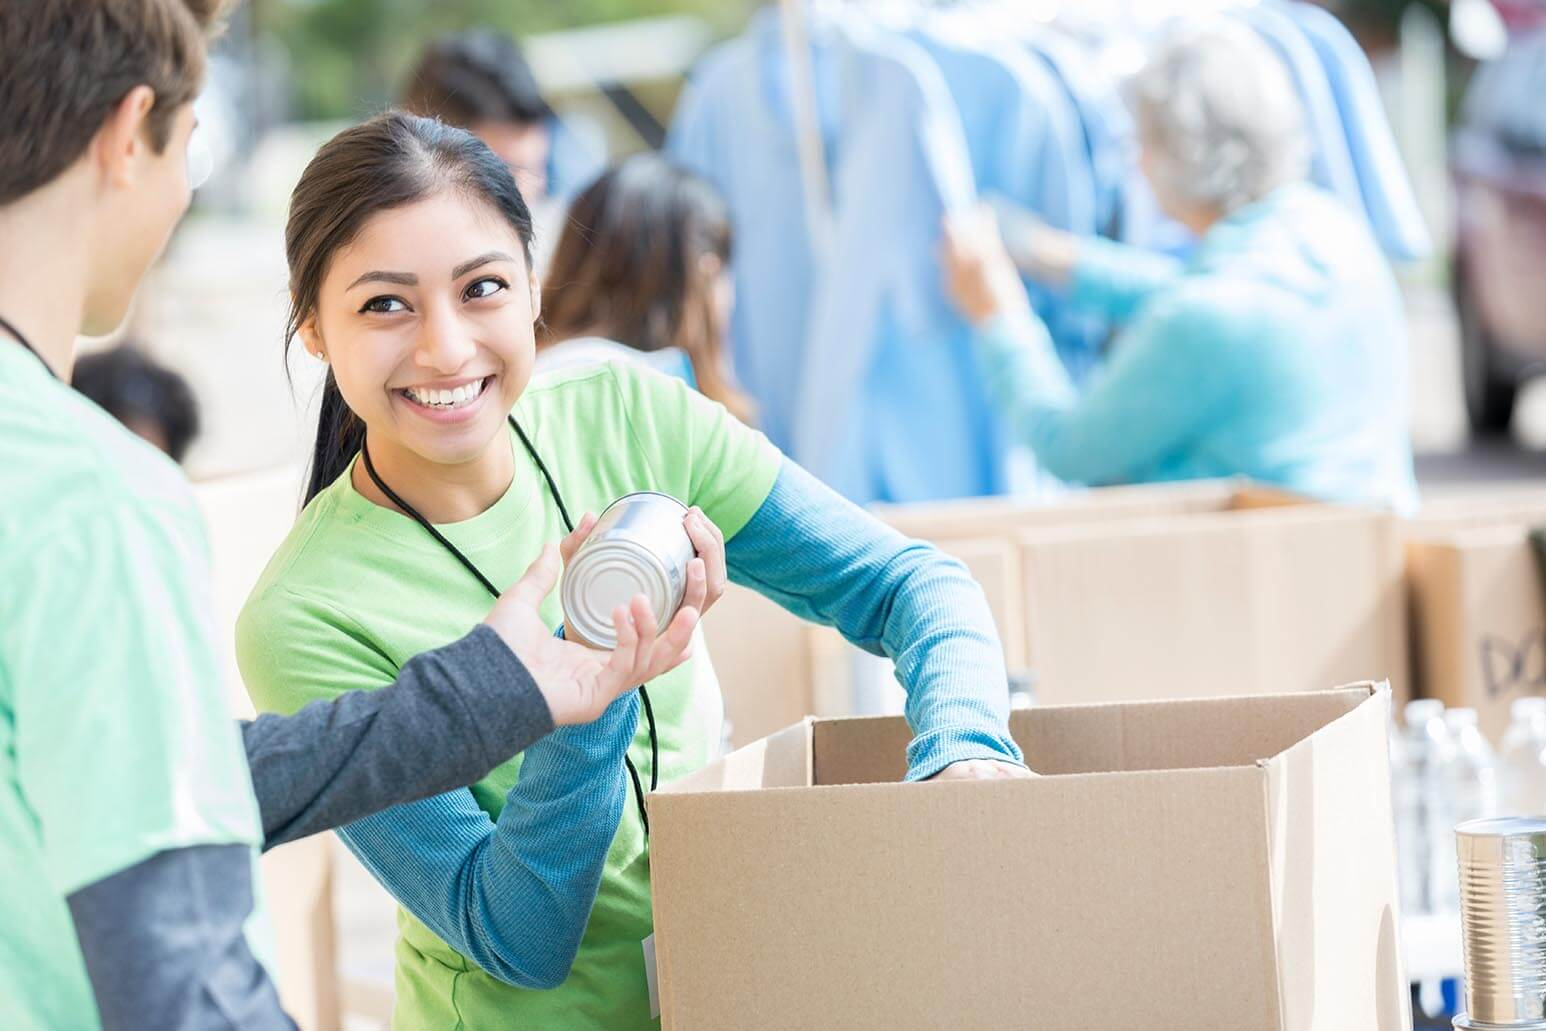 Employers widely consider volunteer experience as work experience, so if you have ever helped organize a food drive, volunteered for a charity or helped at an event, you might be able to put it on a resume.